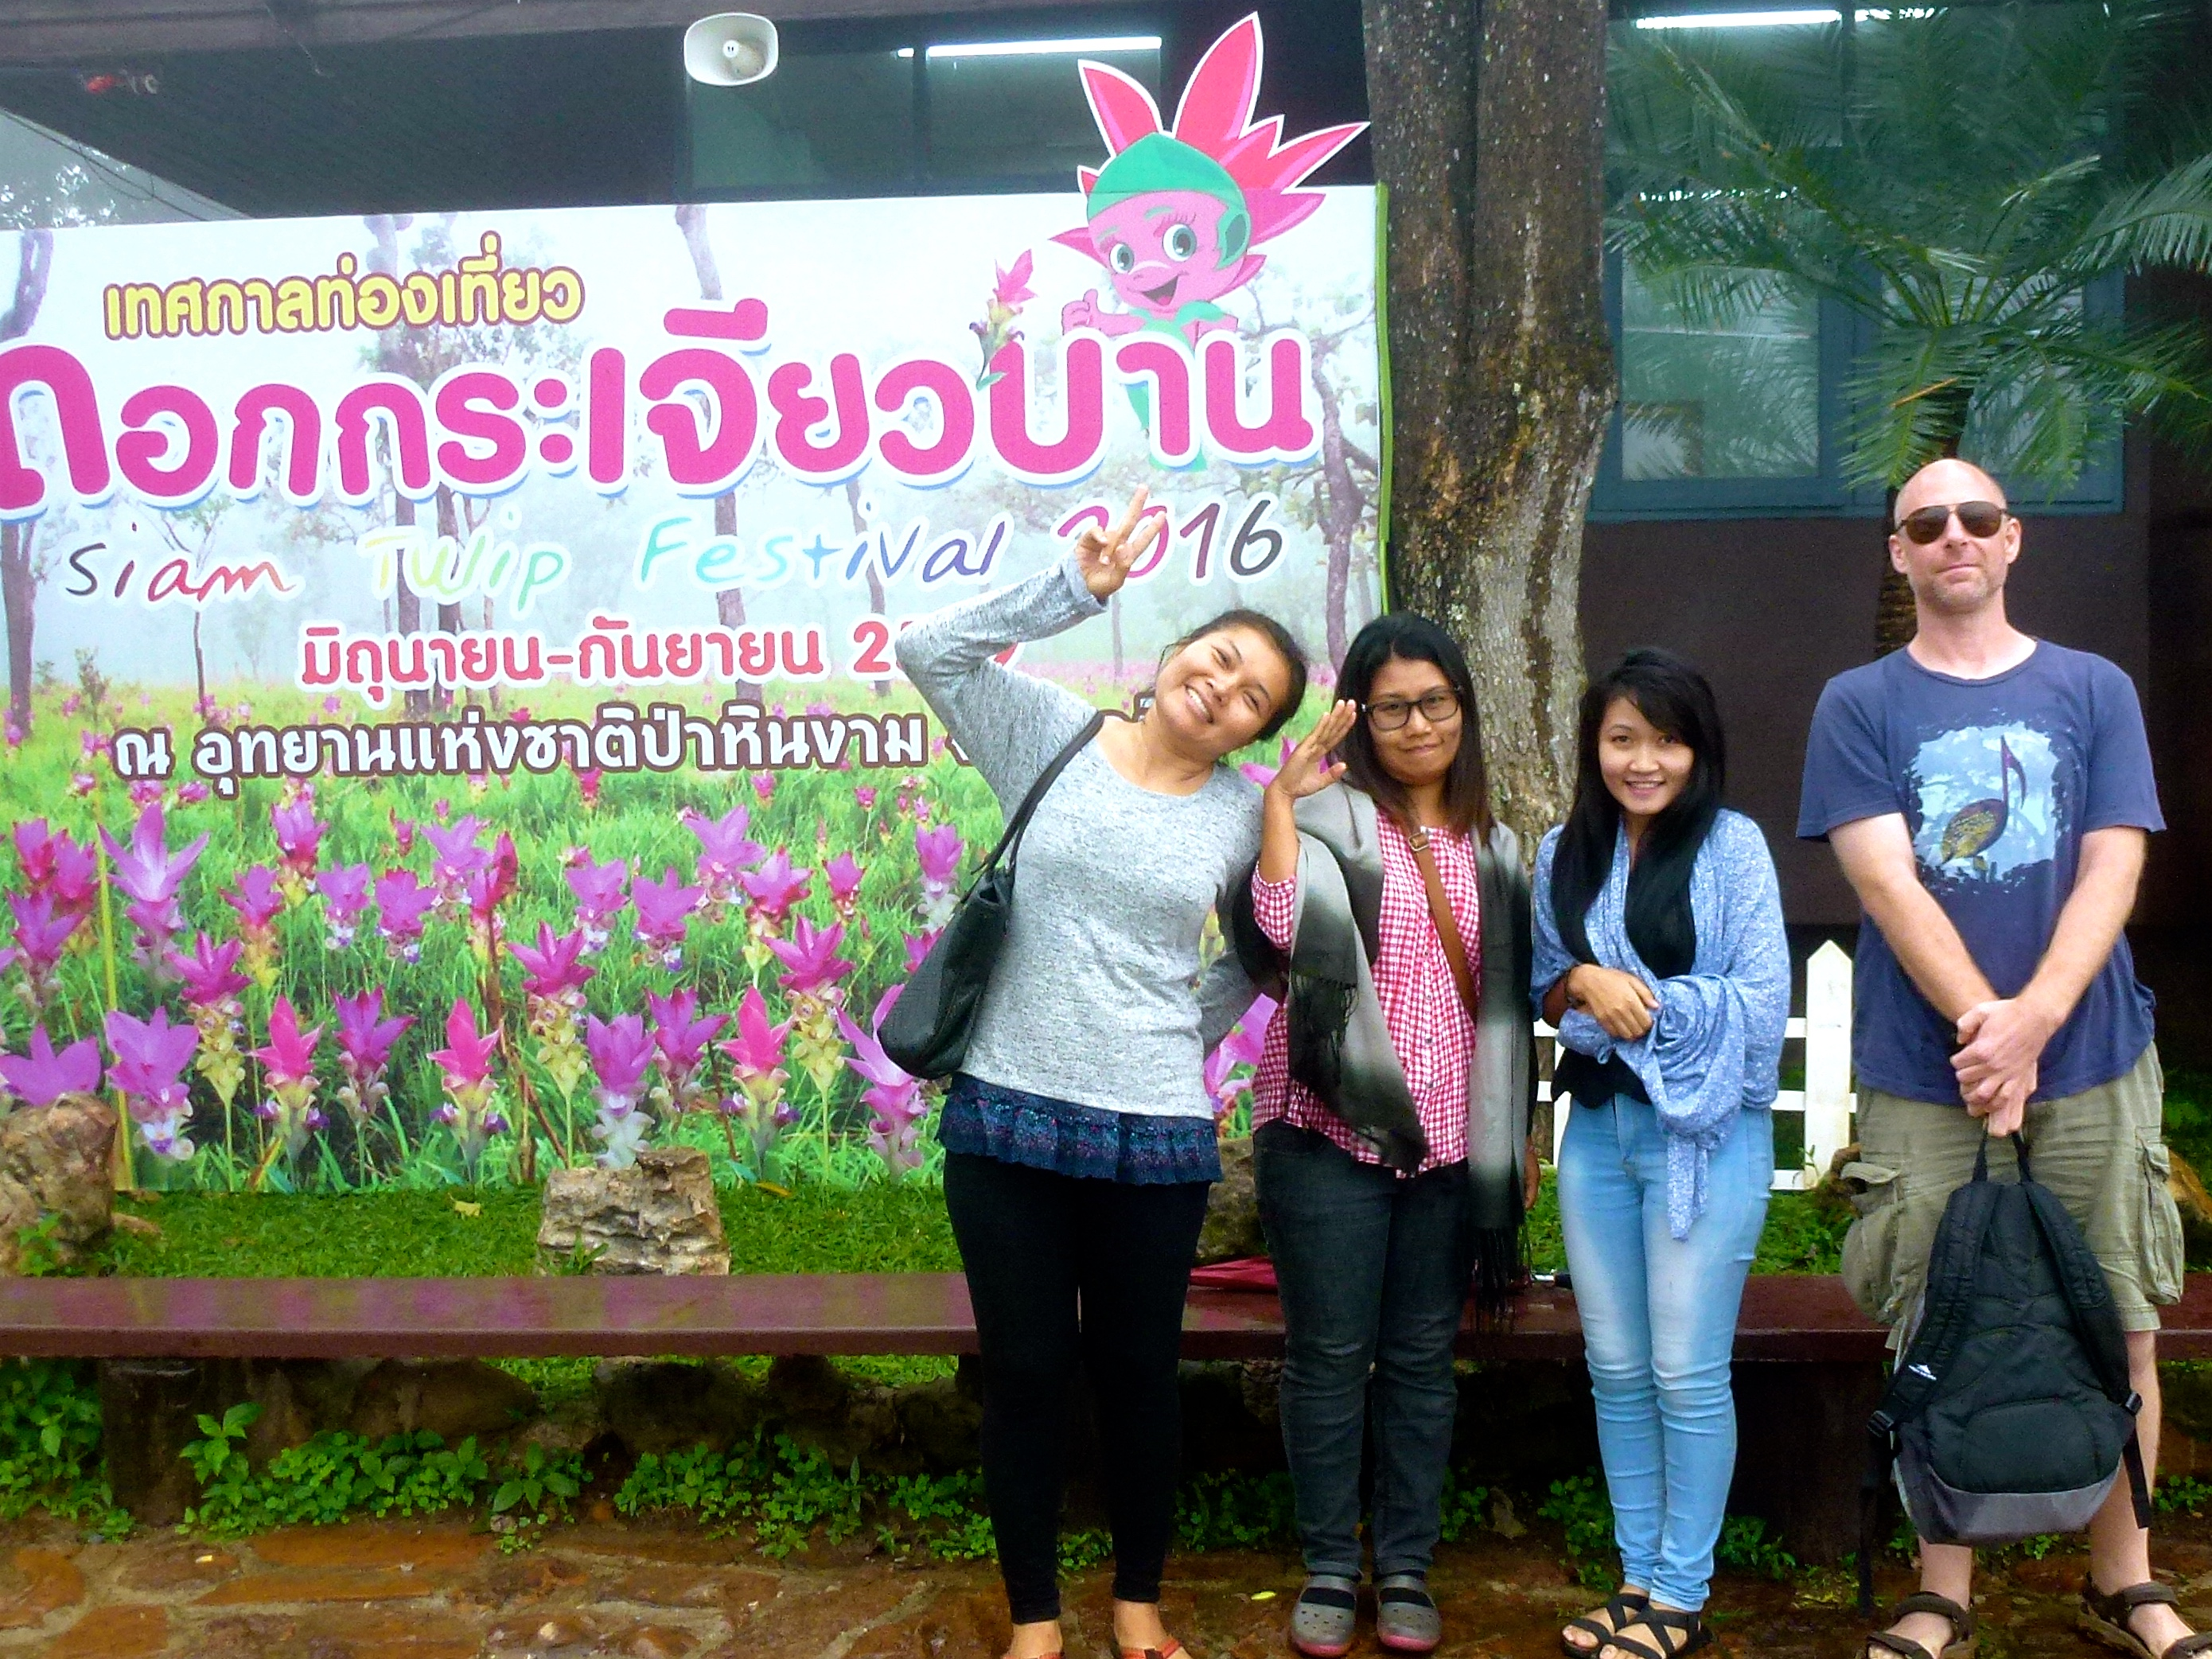 The Breakthrough leaders took us to see the wild Dok Krayjiaw flowers in Chaiyaphum Province